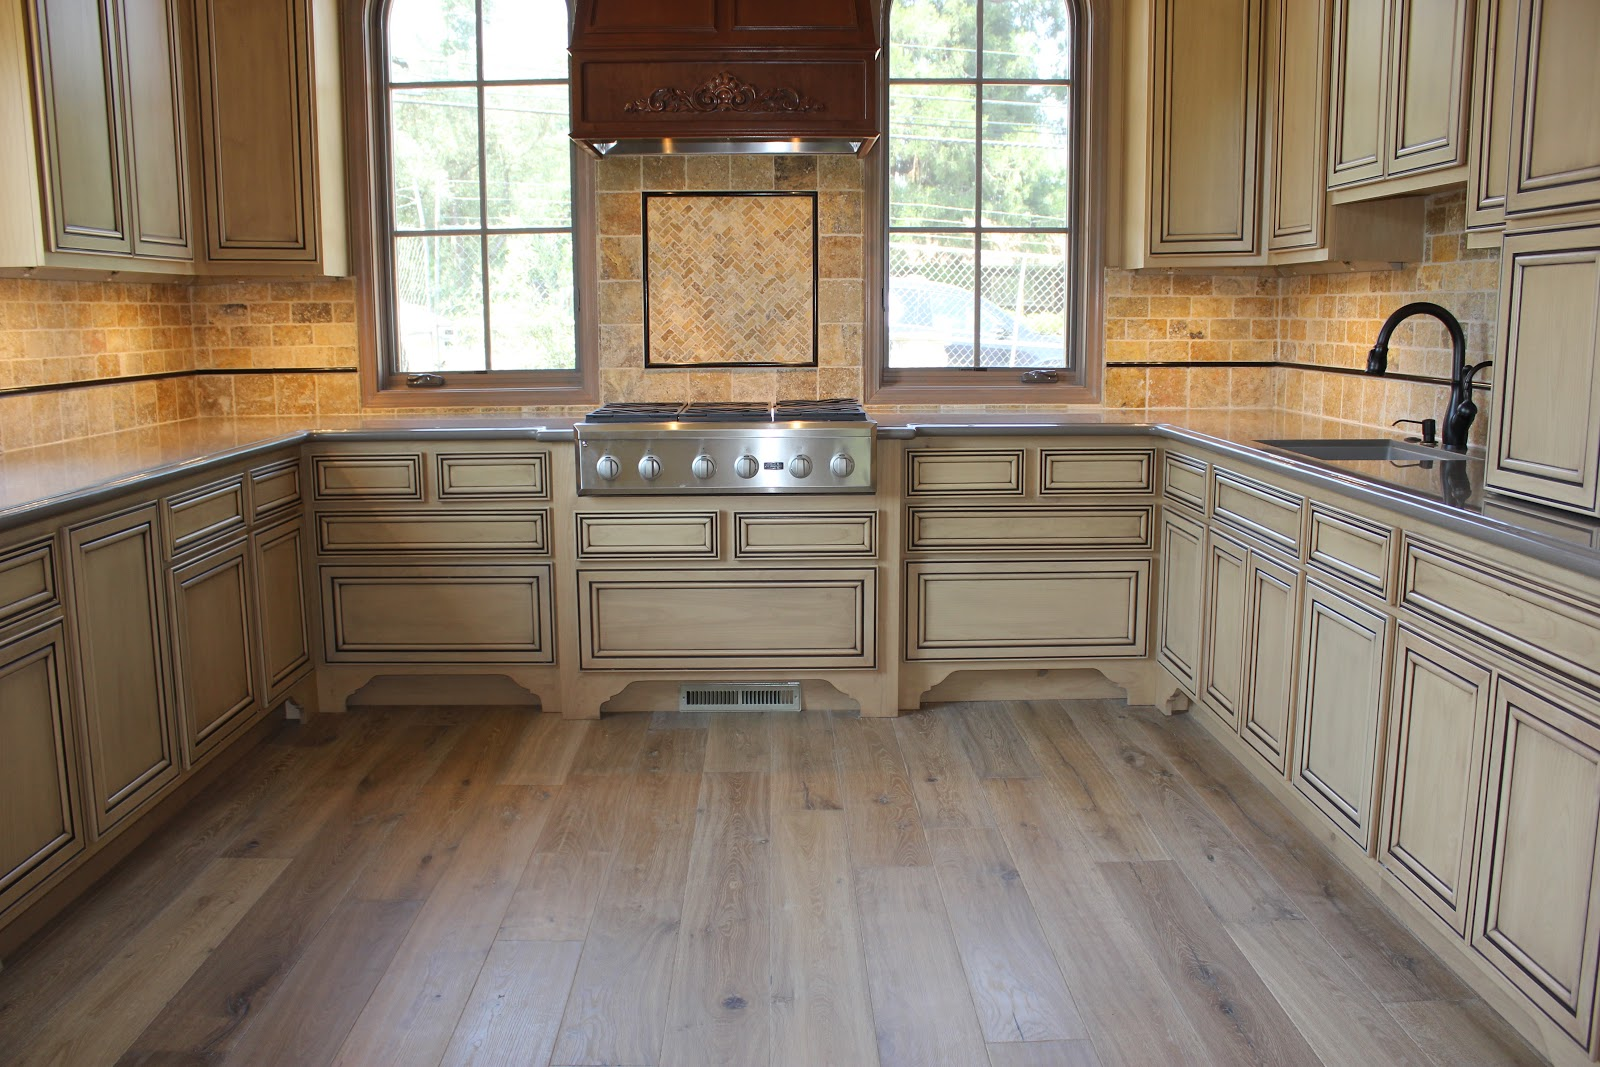 Simas floor and design company hardwood flooring by royal oak for Hardwood floors kitchen